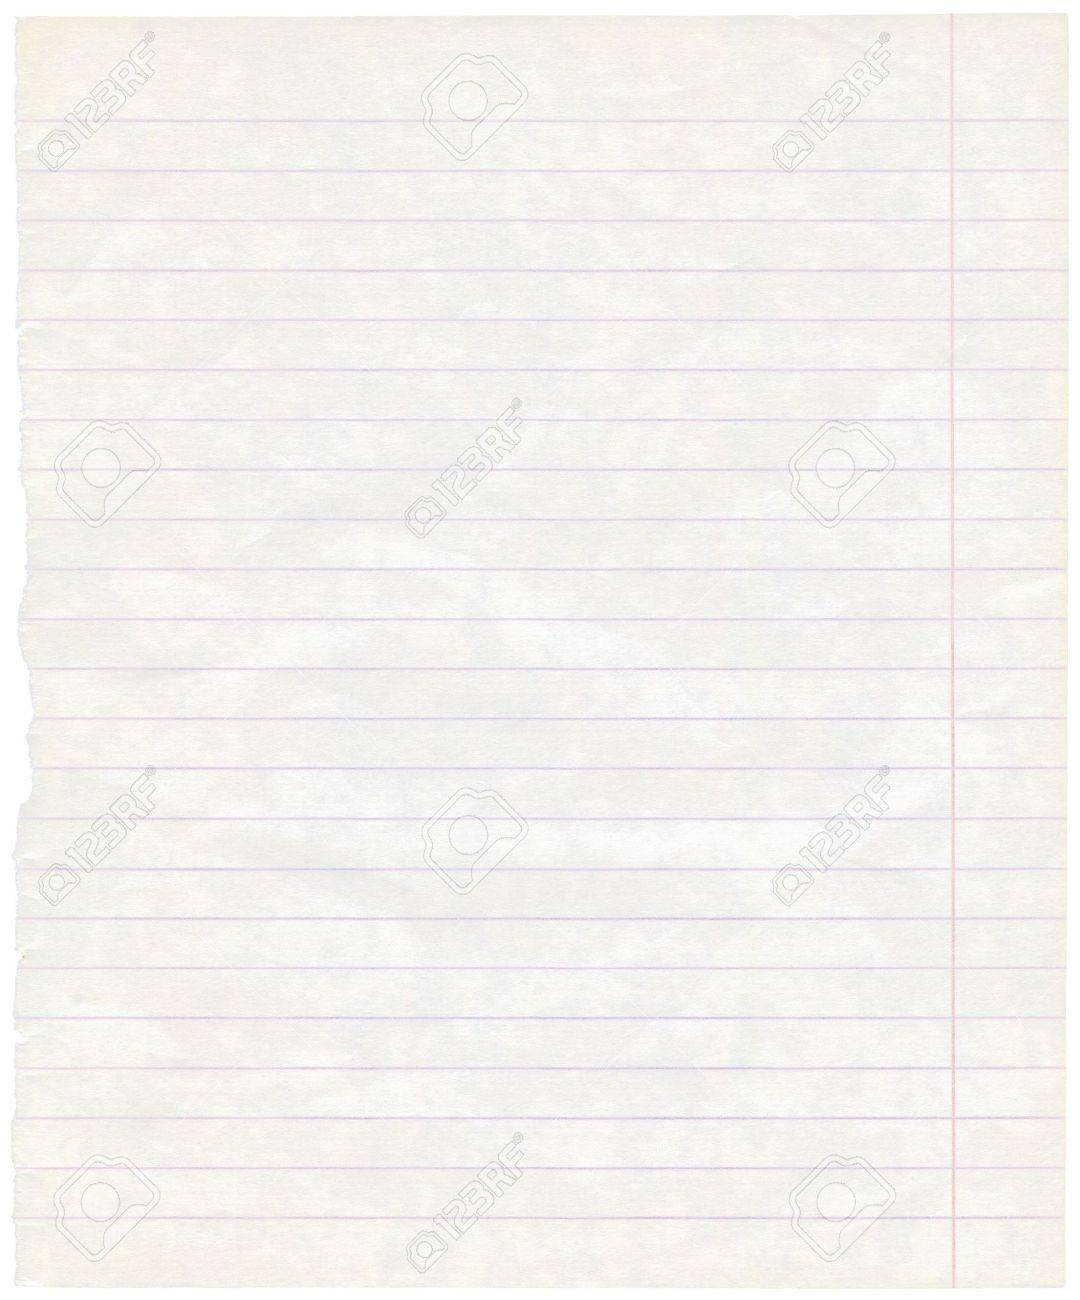 Single lined paper